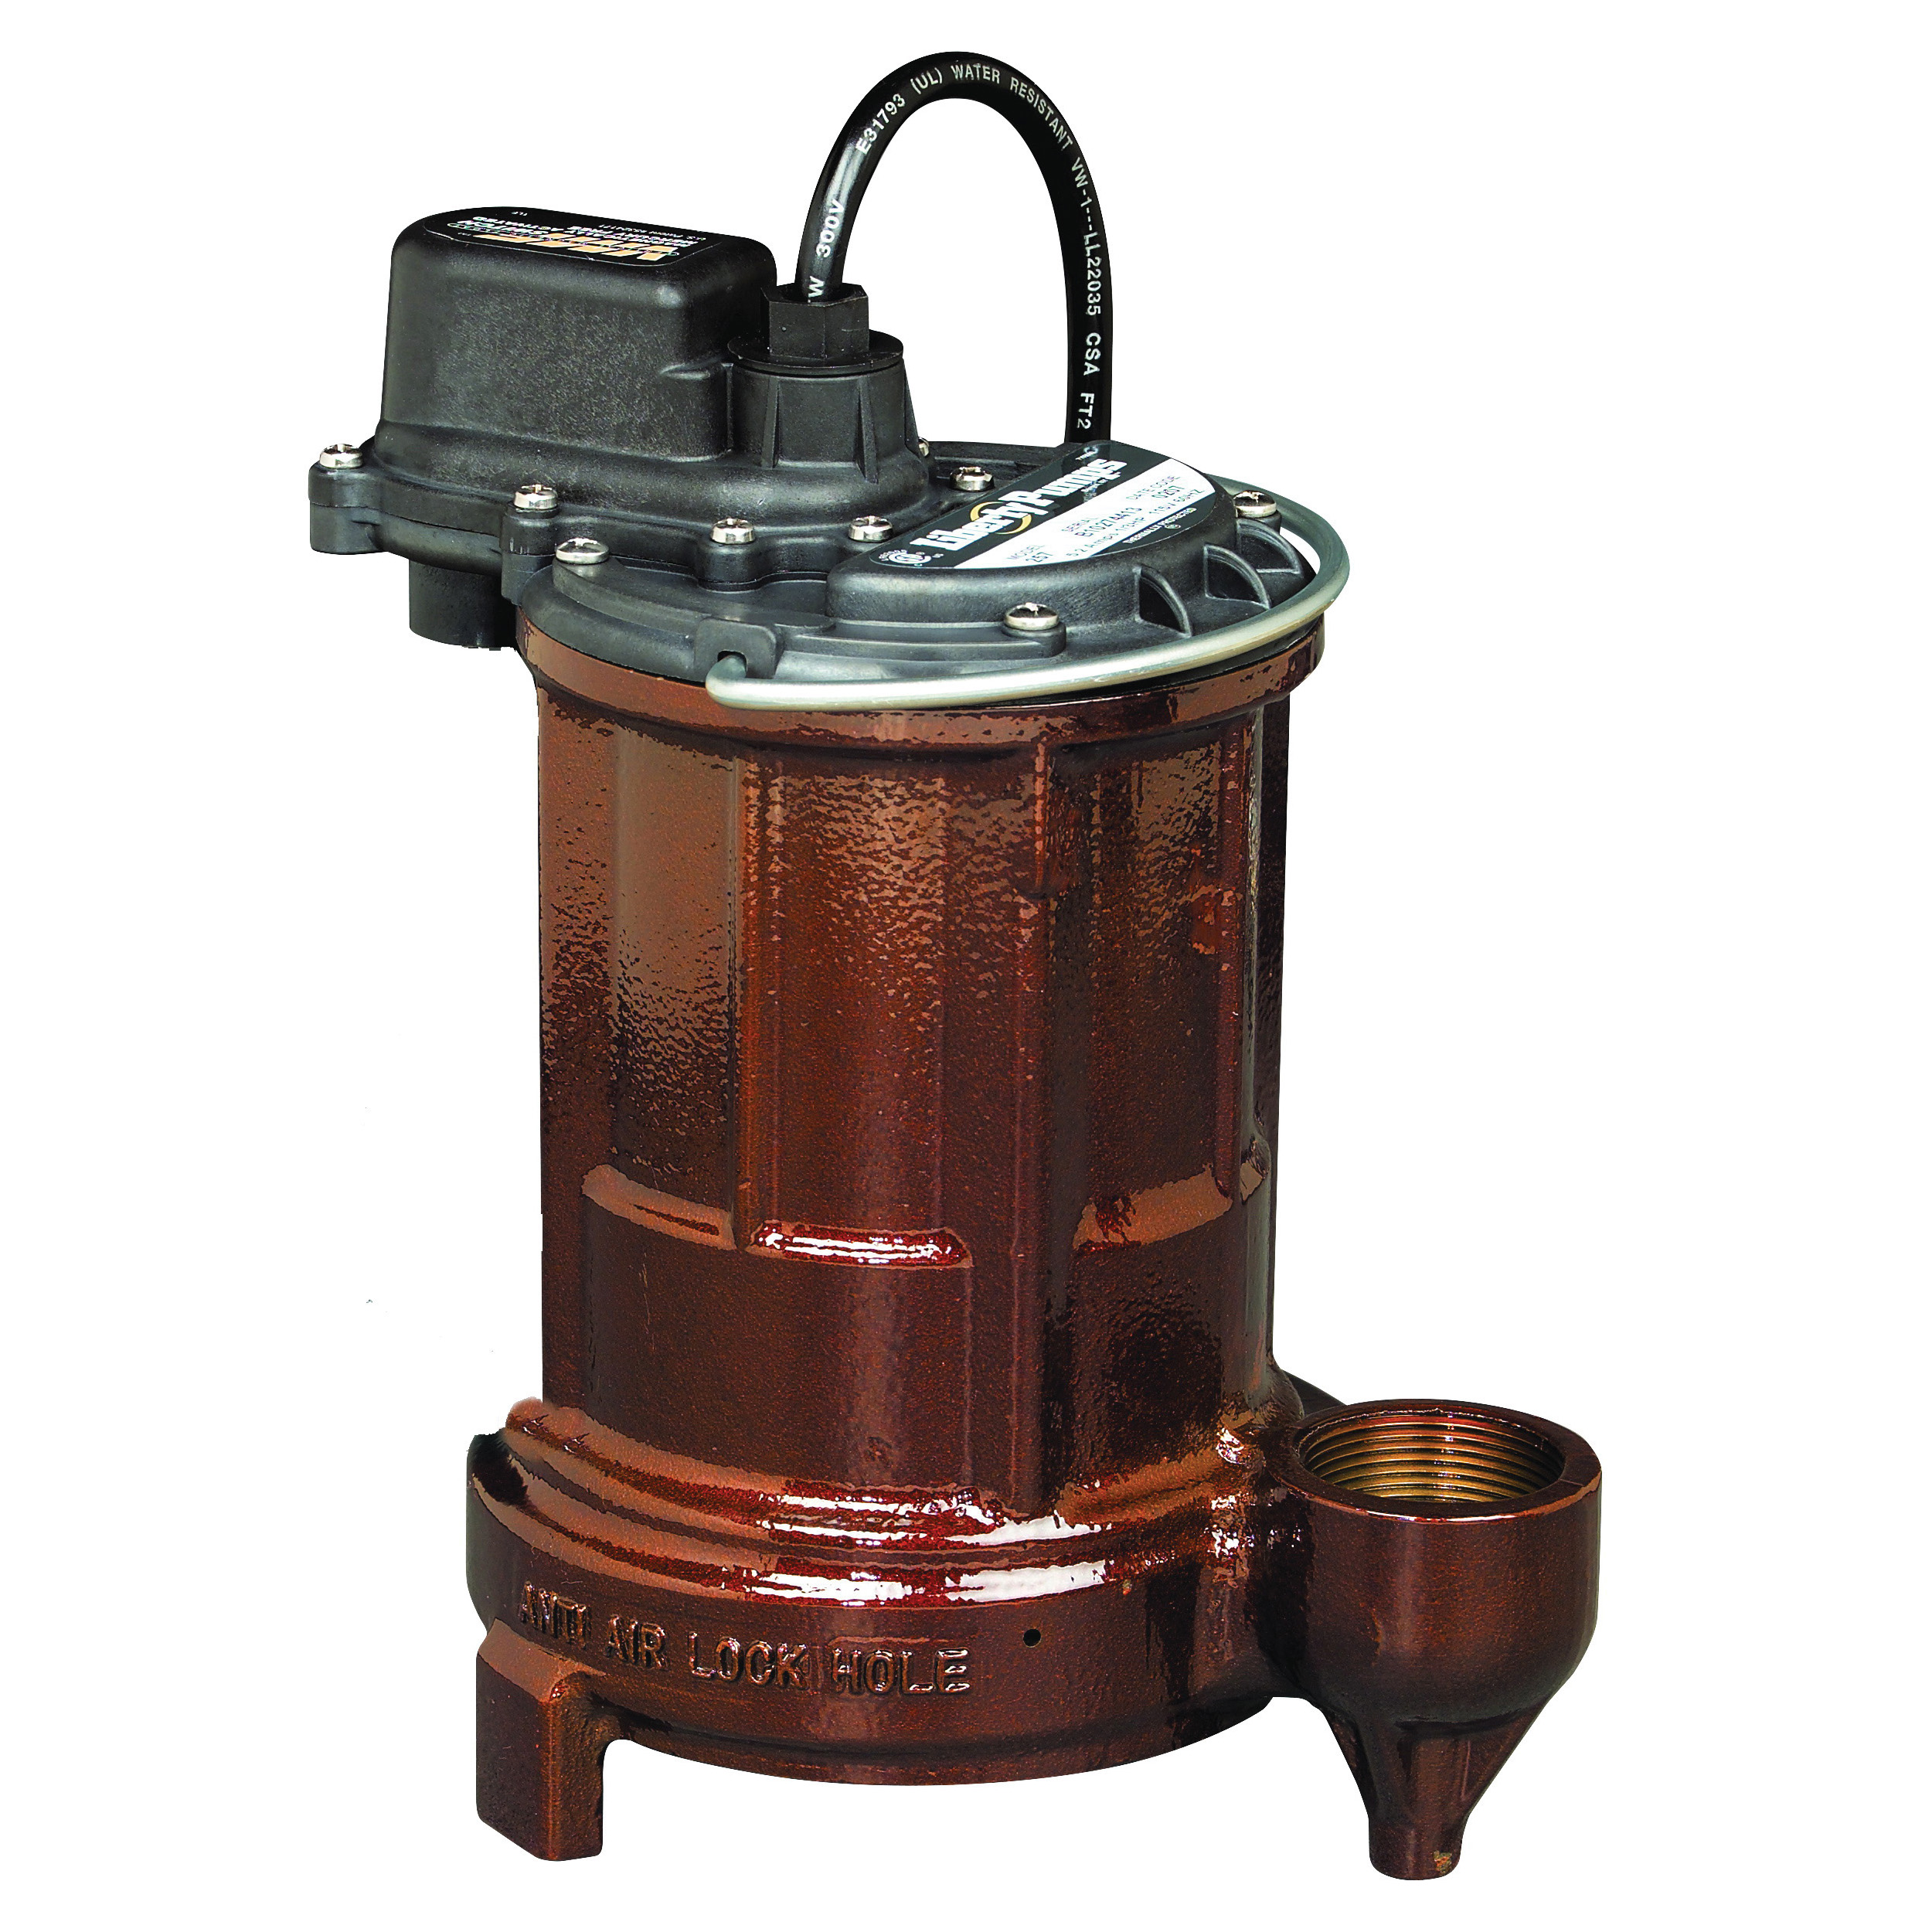 Liberty Pumps® 250 1-Phase Low-Head Submersible Effluent Pump, 44 gpm Max Flow, 5 ft Rated Head, Automatic/Non Automatic: Non-Automatic, 23 ft Max Head, 115 VAC